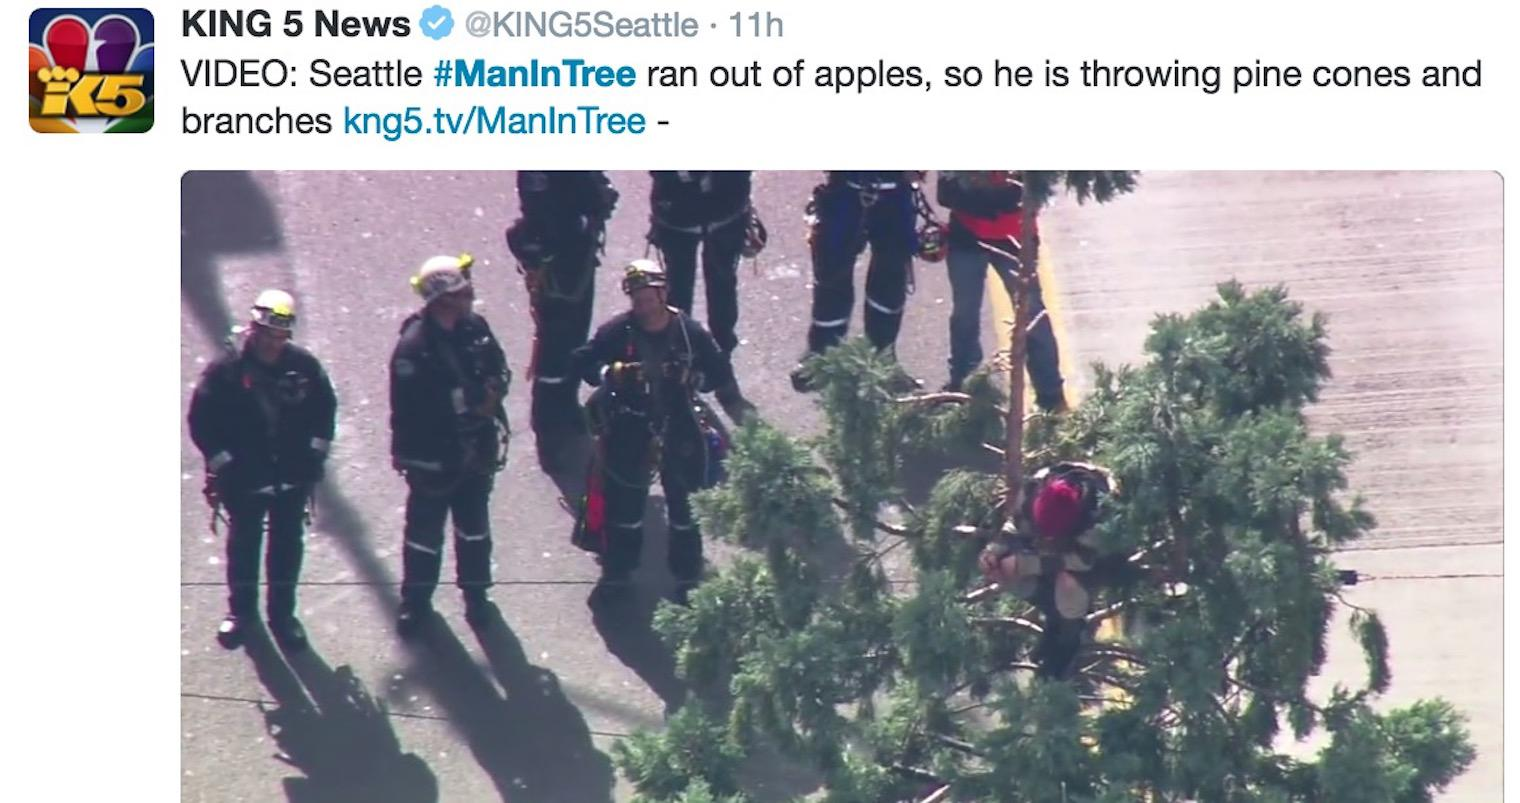 Man climbs giant tree in Seattle, refuses to get down